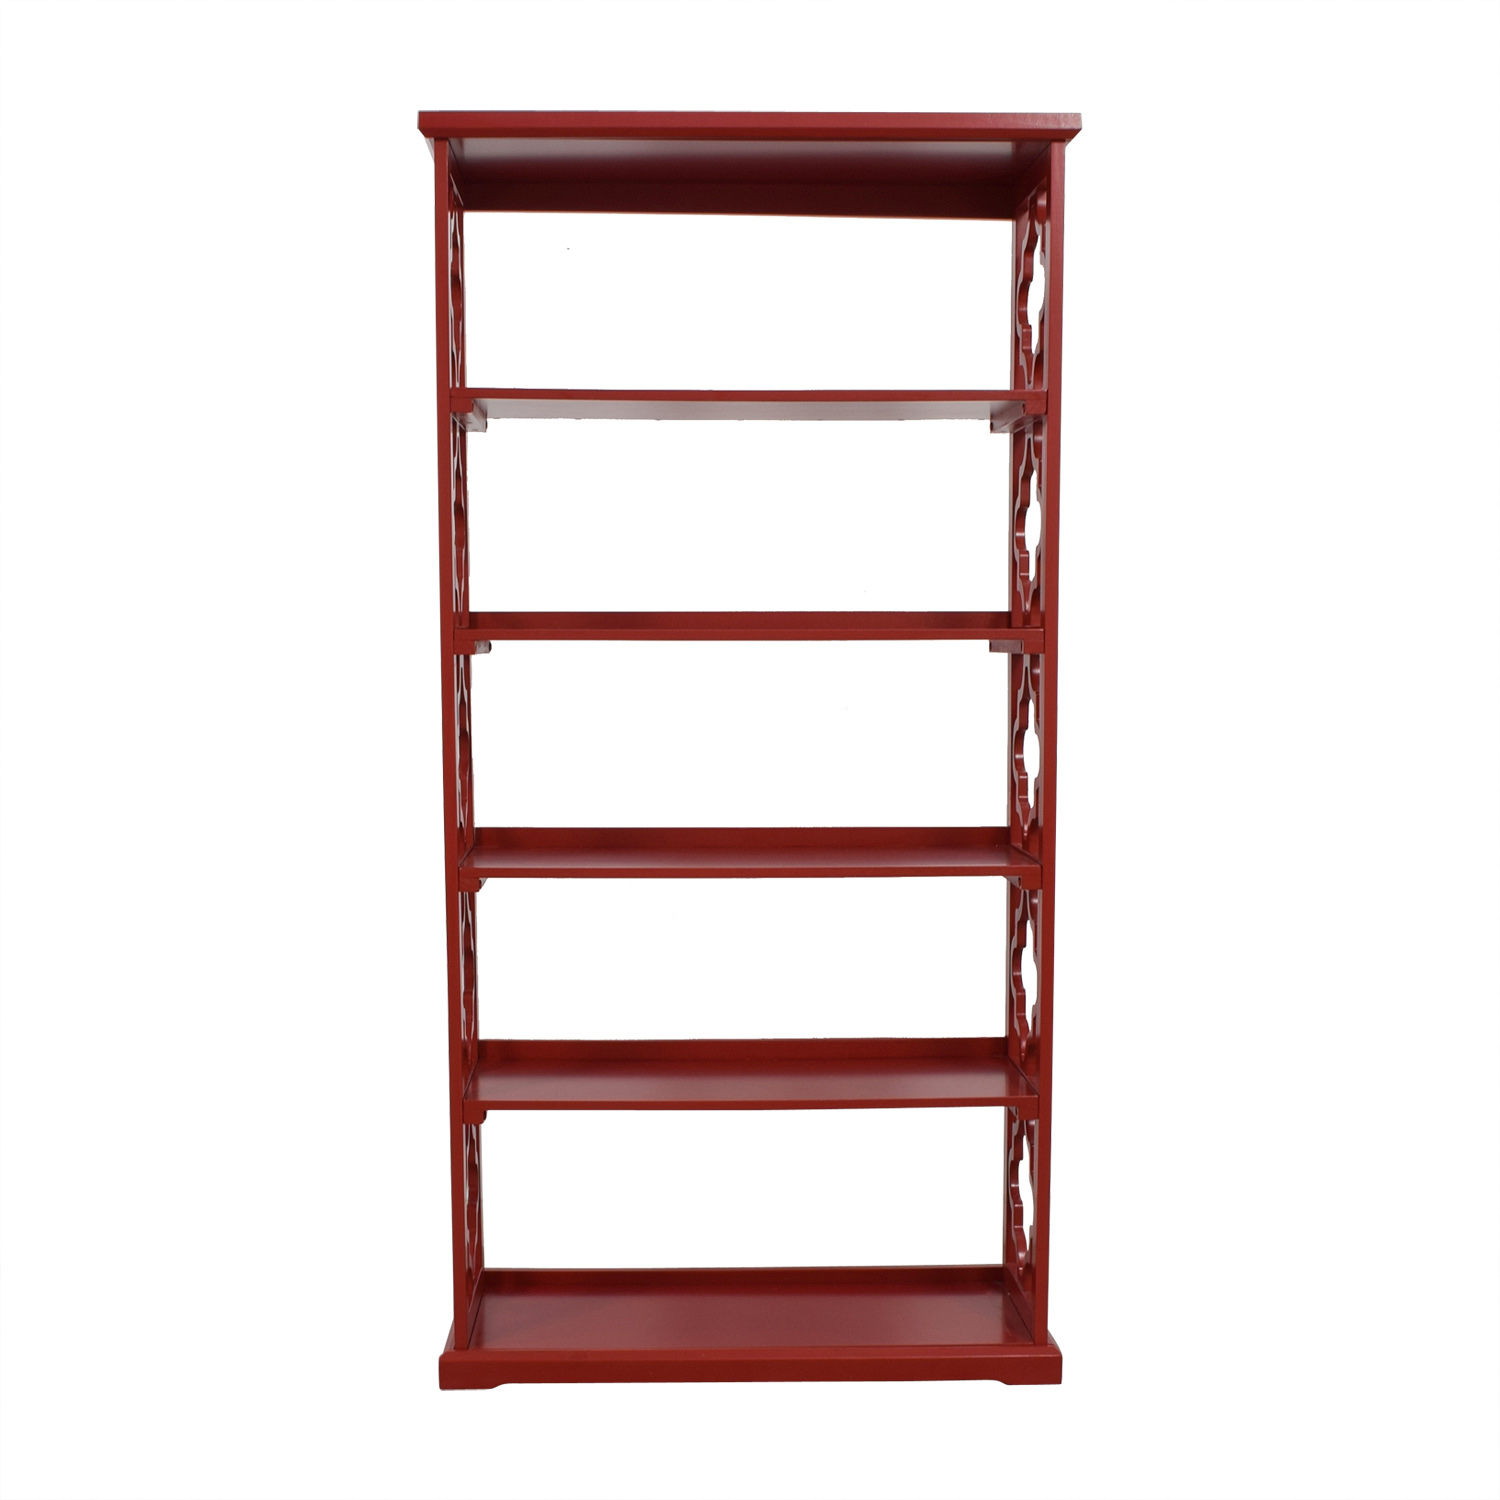 Red Etagere Bookcase / Bookcases & Shelving